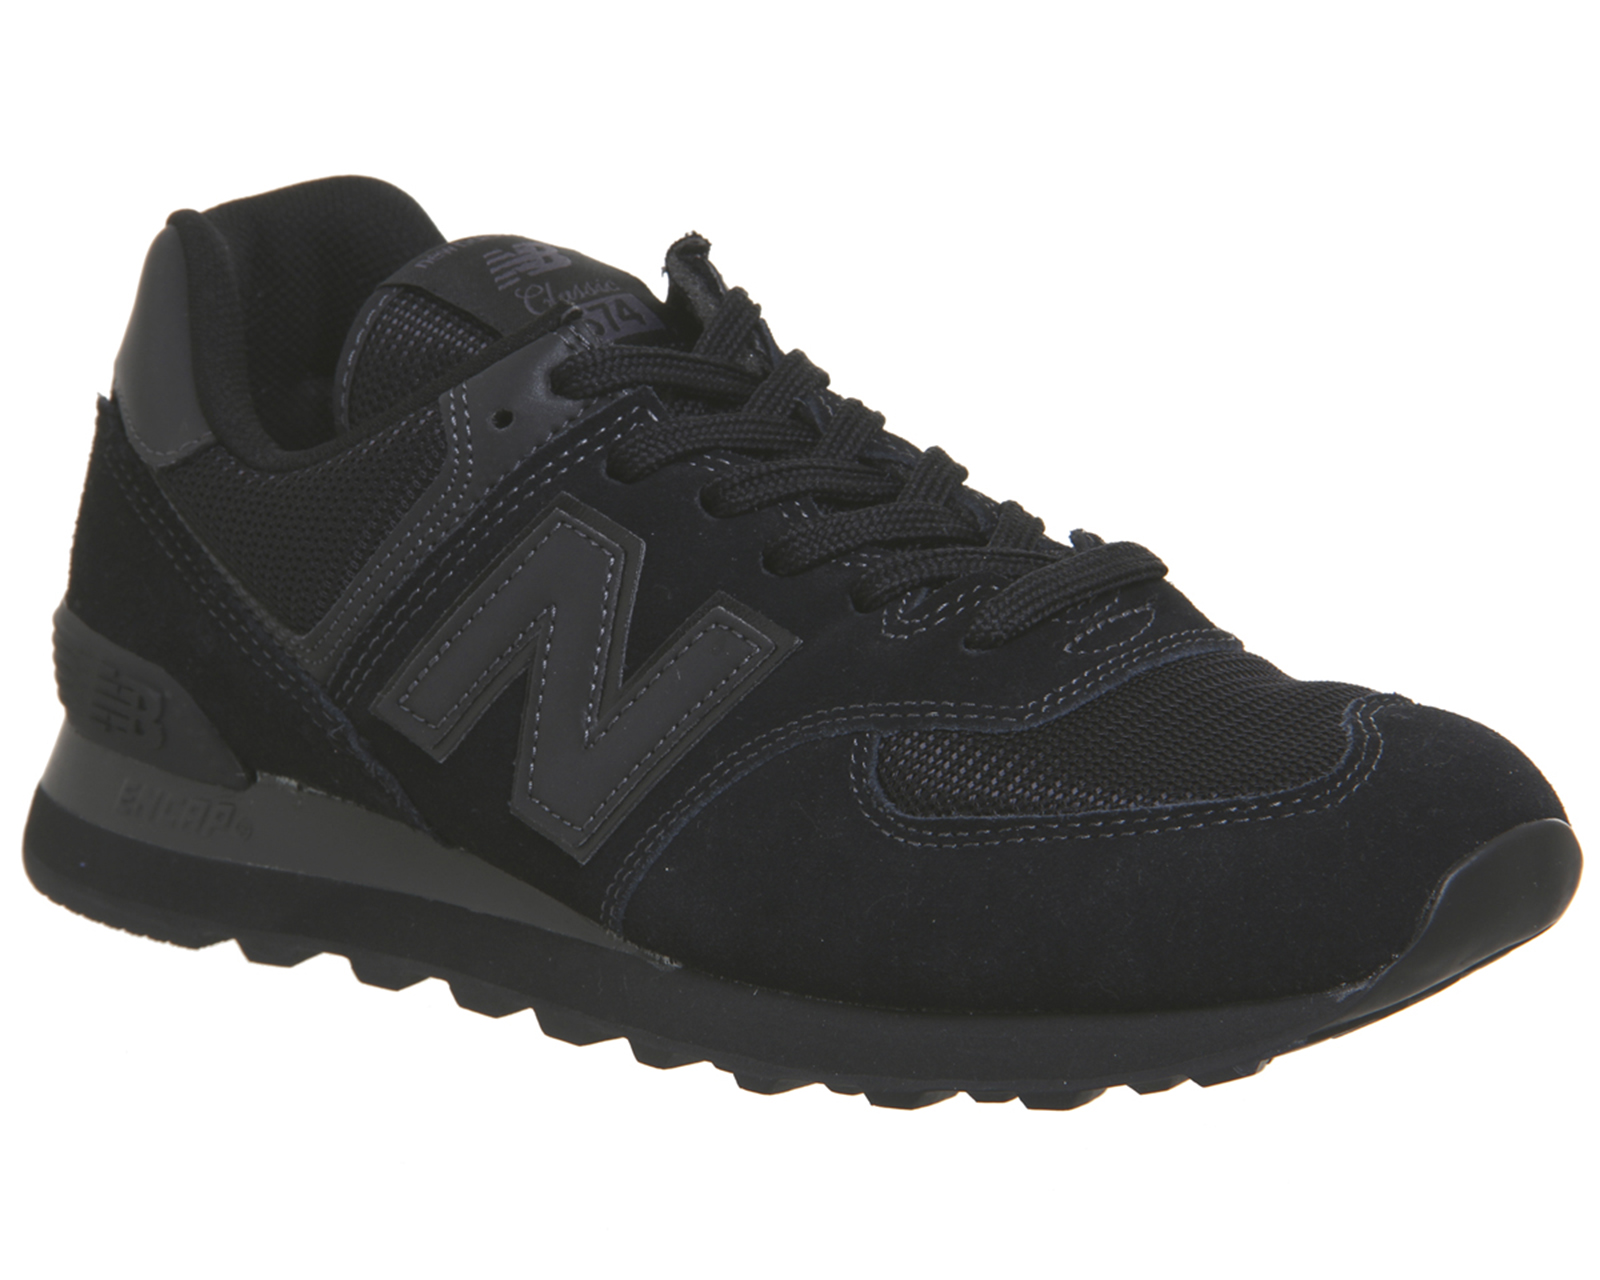 grand choix de a78a6 4a990 reduced new balance 574 trainers black ab1bf 044be